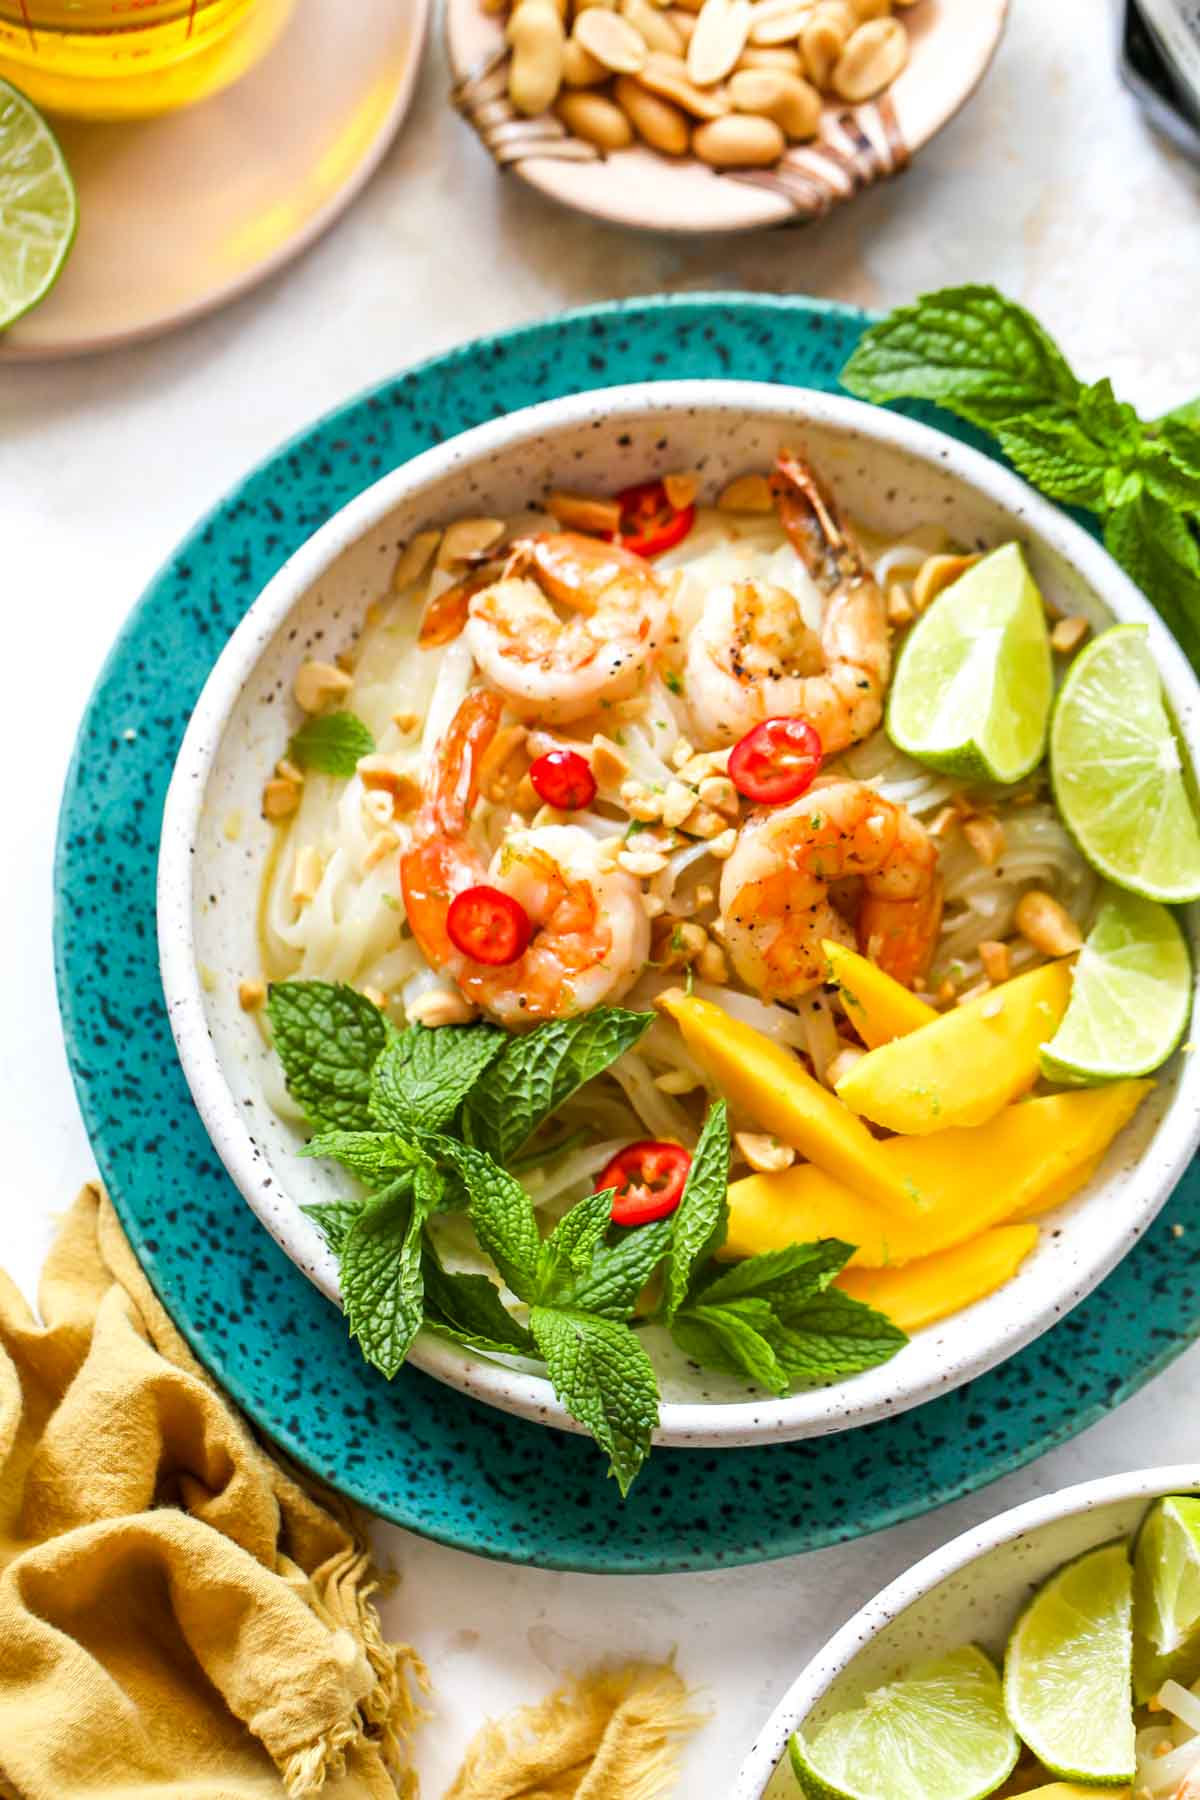 Sauteed shrimp over glass noodles in a white bowl